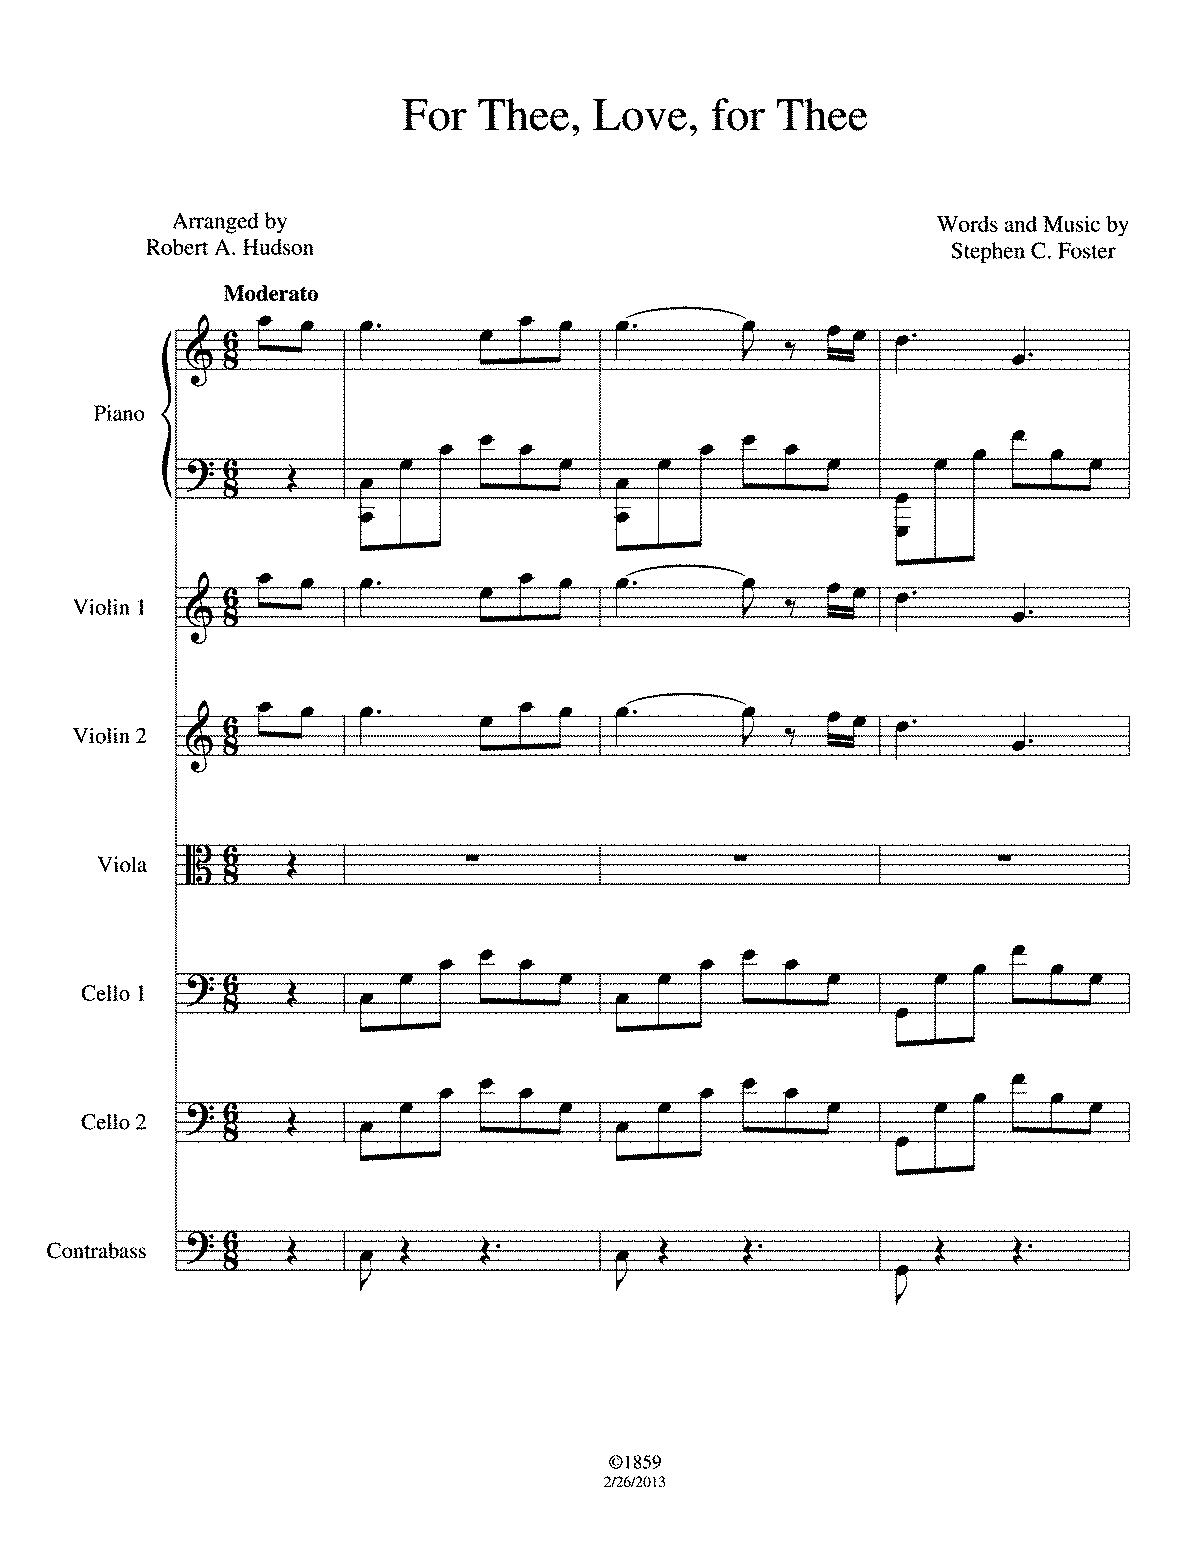 PMLP362452-For Thee Love For Thee Consuctores Score.pdf